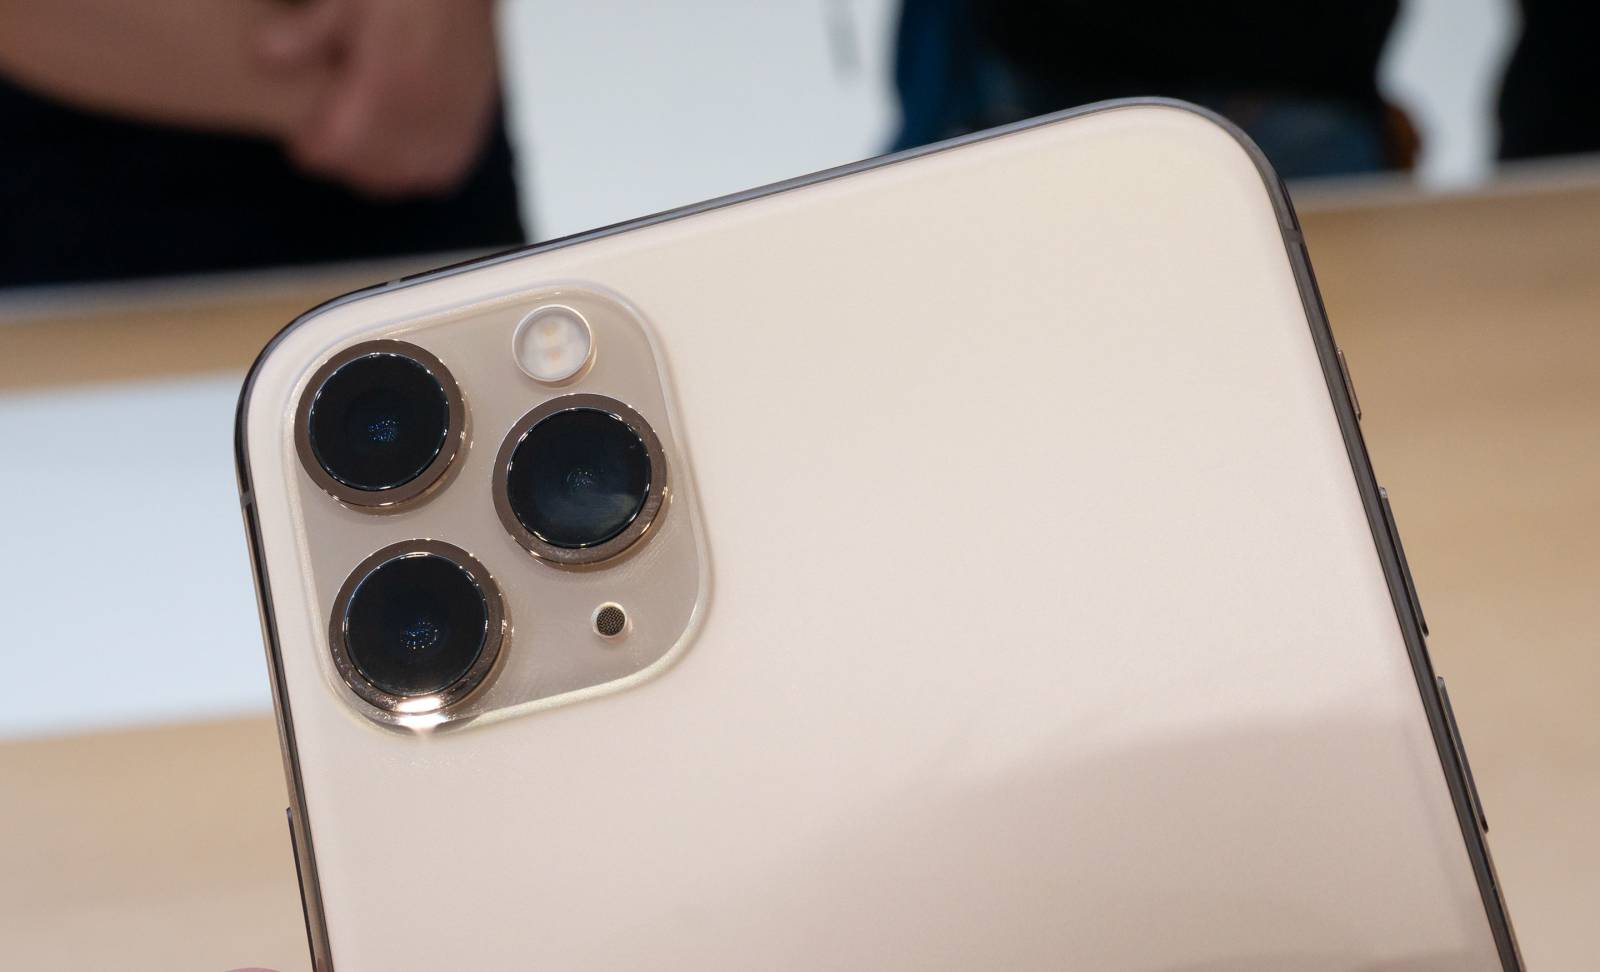 eMAG anunta LANSARAE iPhone 11, iPhone 11 Pro in Romania